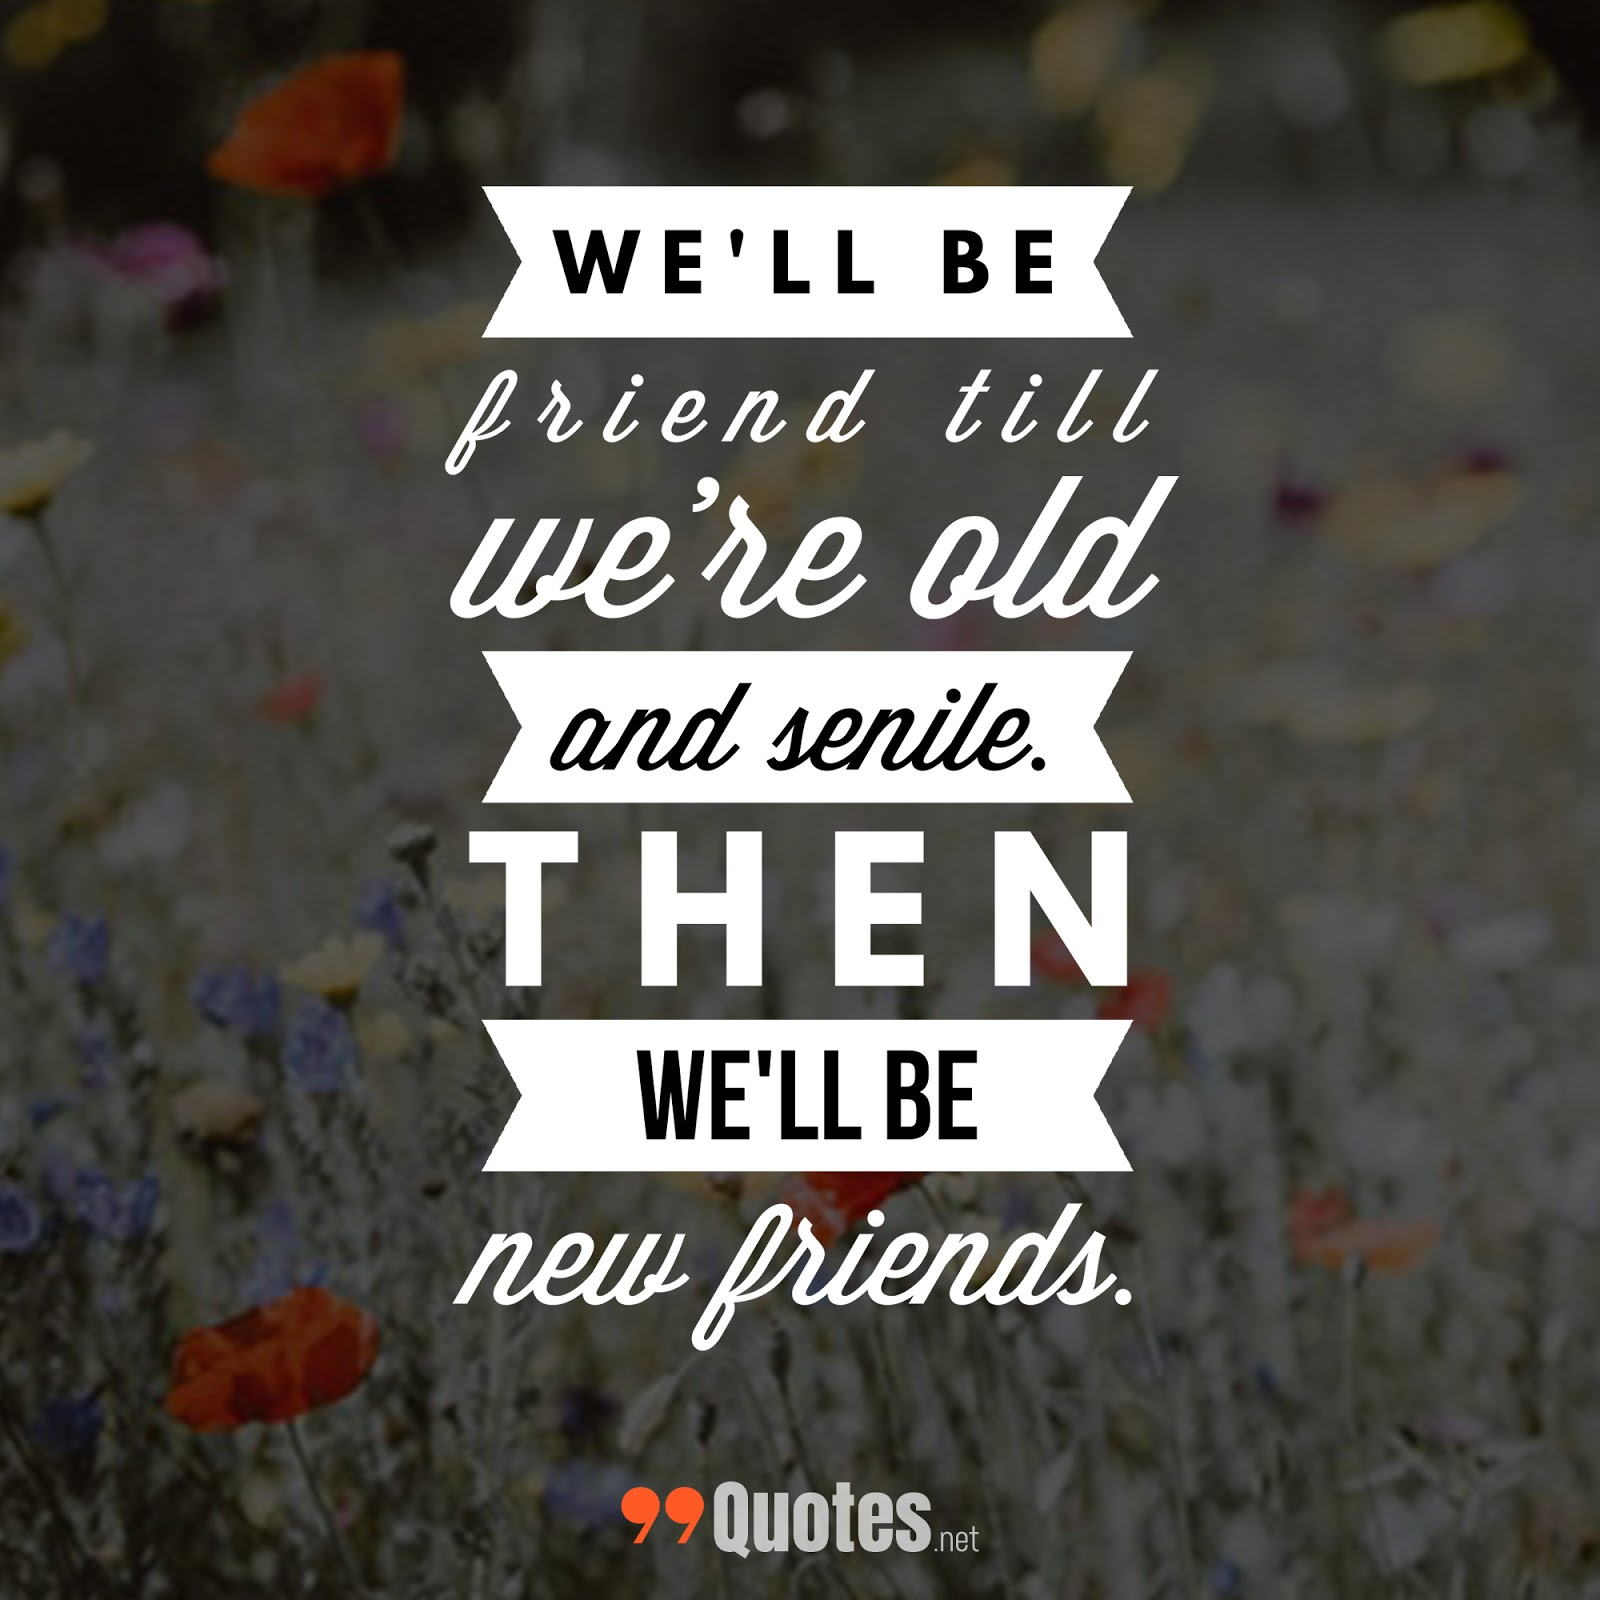 Cute Short Quotes About Family: 99 Cute Short Friendship Quotes You Will Love [with Images]